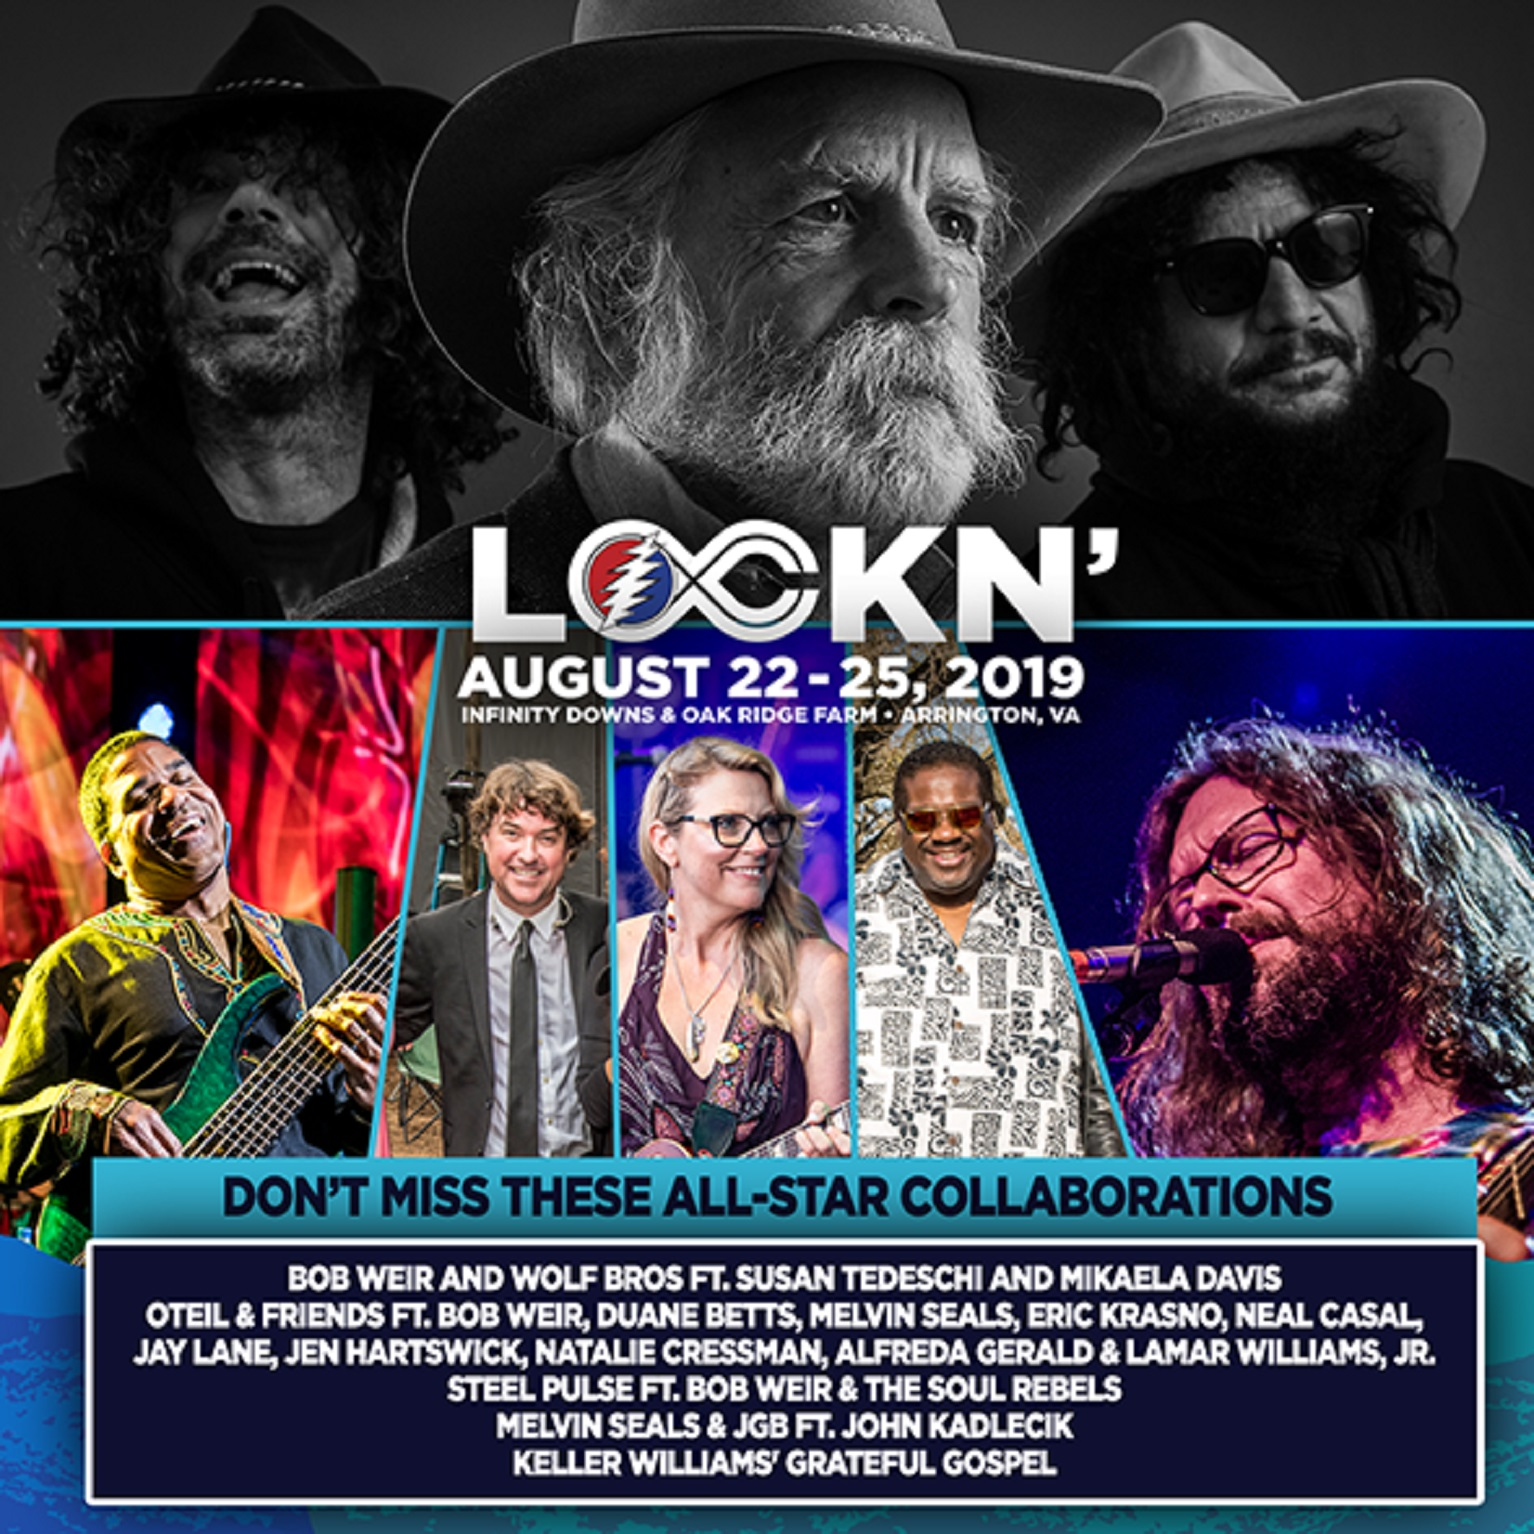 DeadHeads Unite for LOCKN' Festival on AUG 22 - 25!